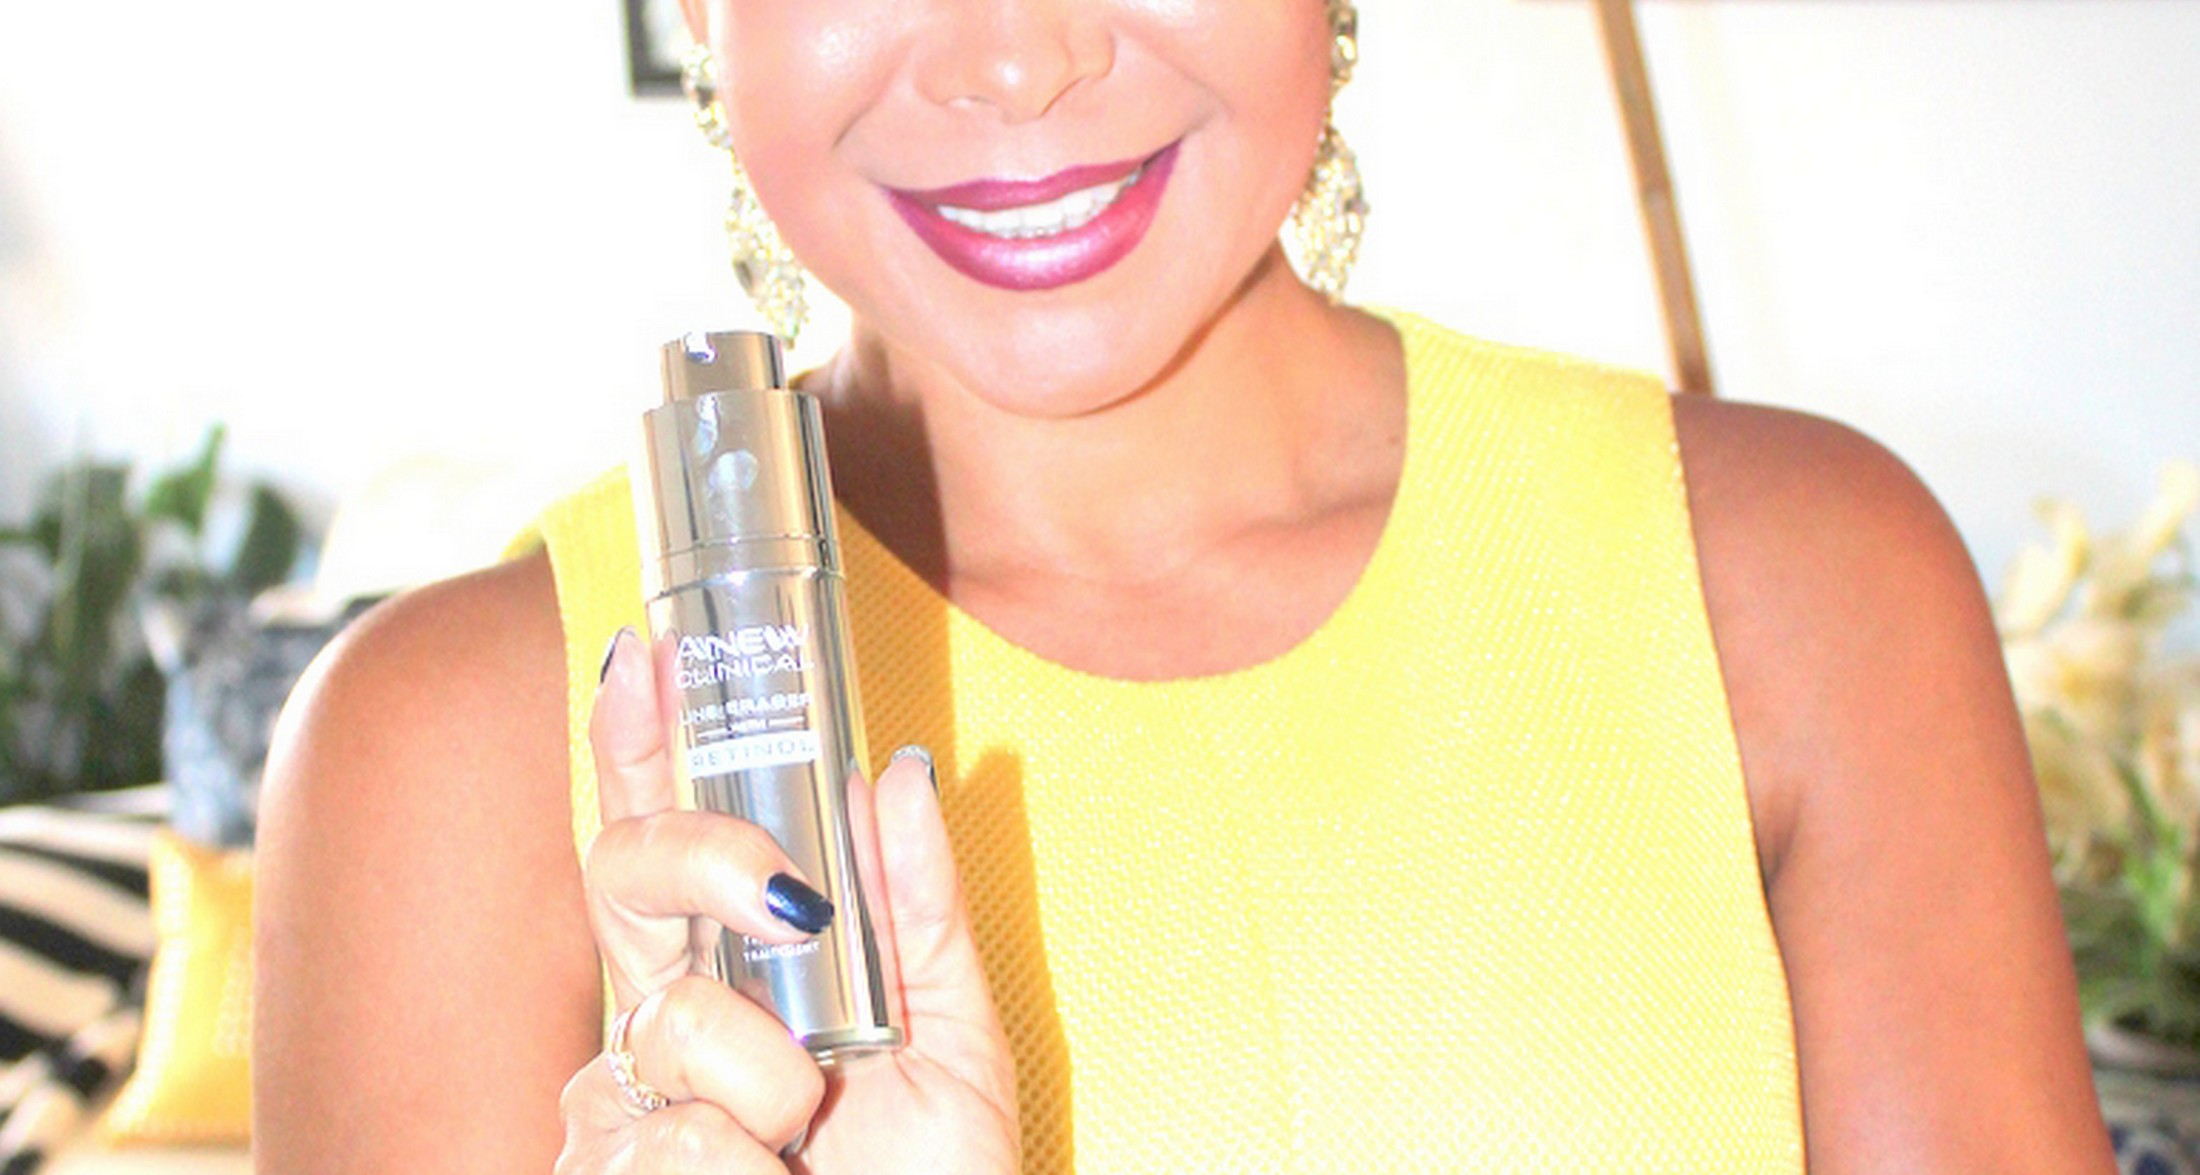 Avon Anew Clinical Line Eraser with Retinol: How age becomes just a number